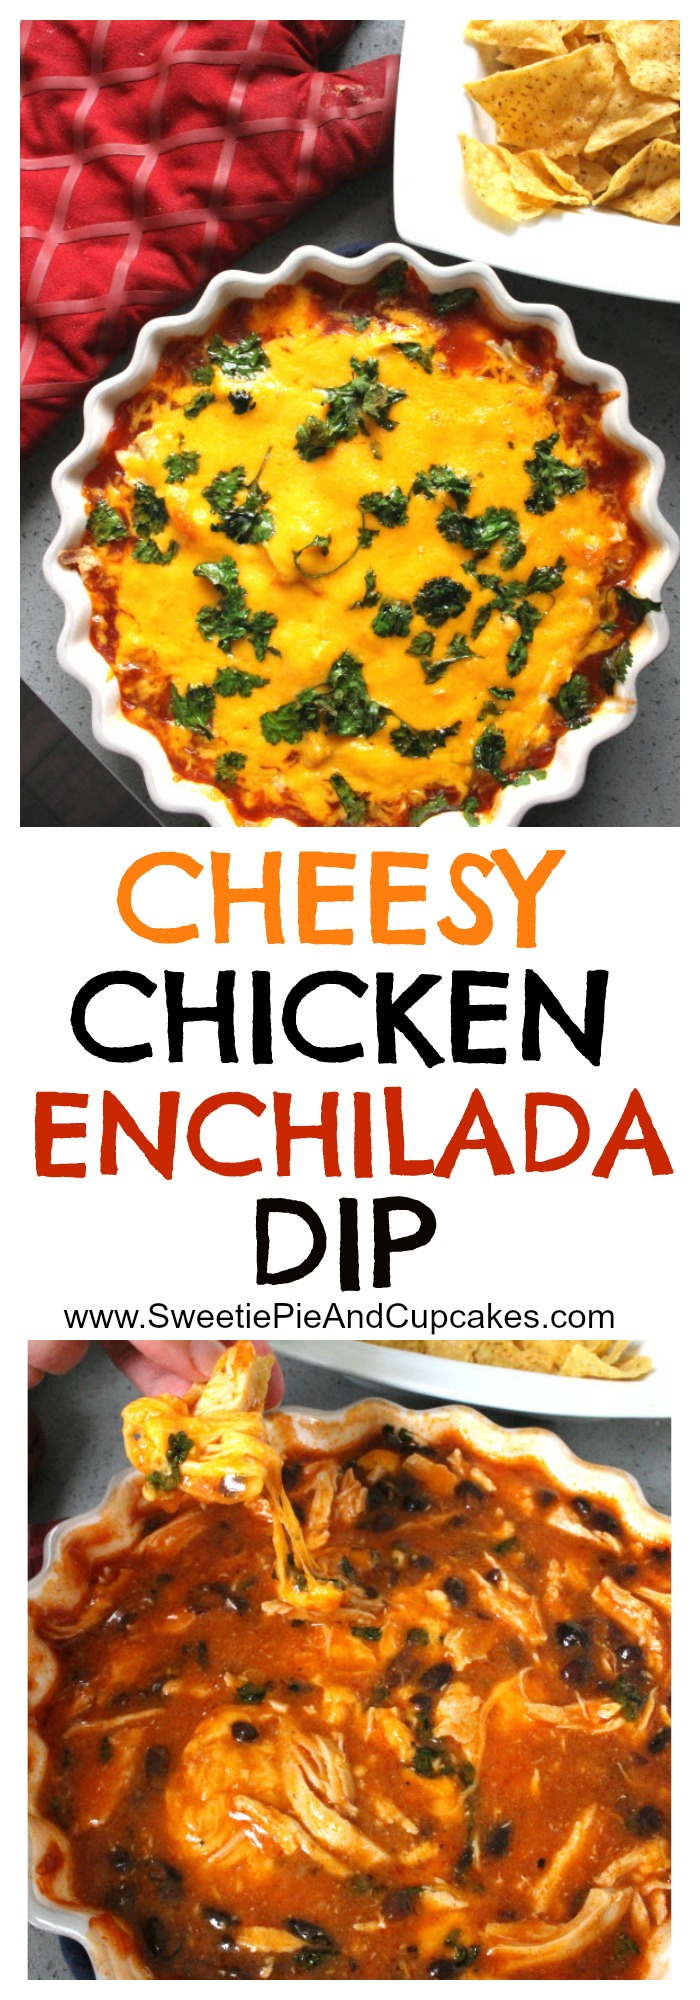 Cheesy Chicken Enchilada Dip